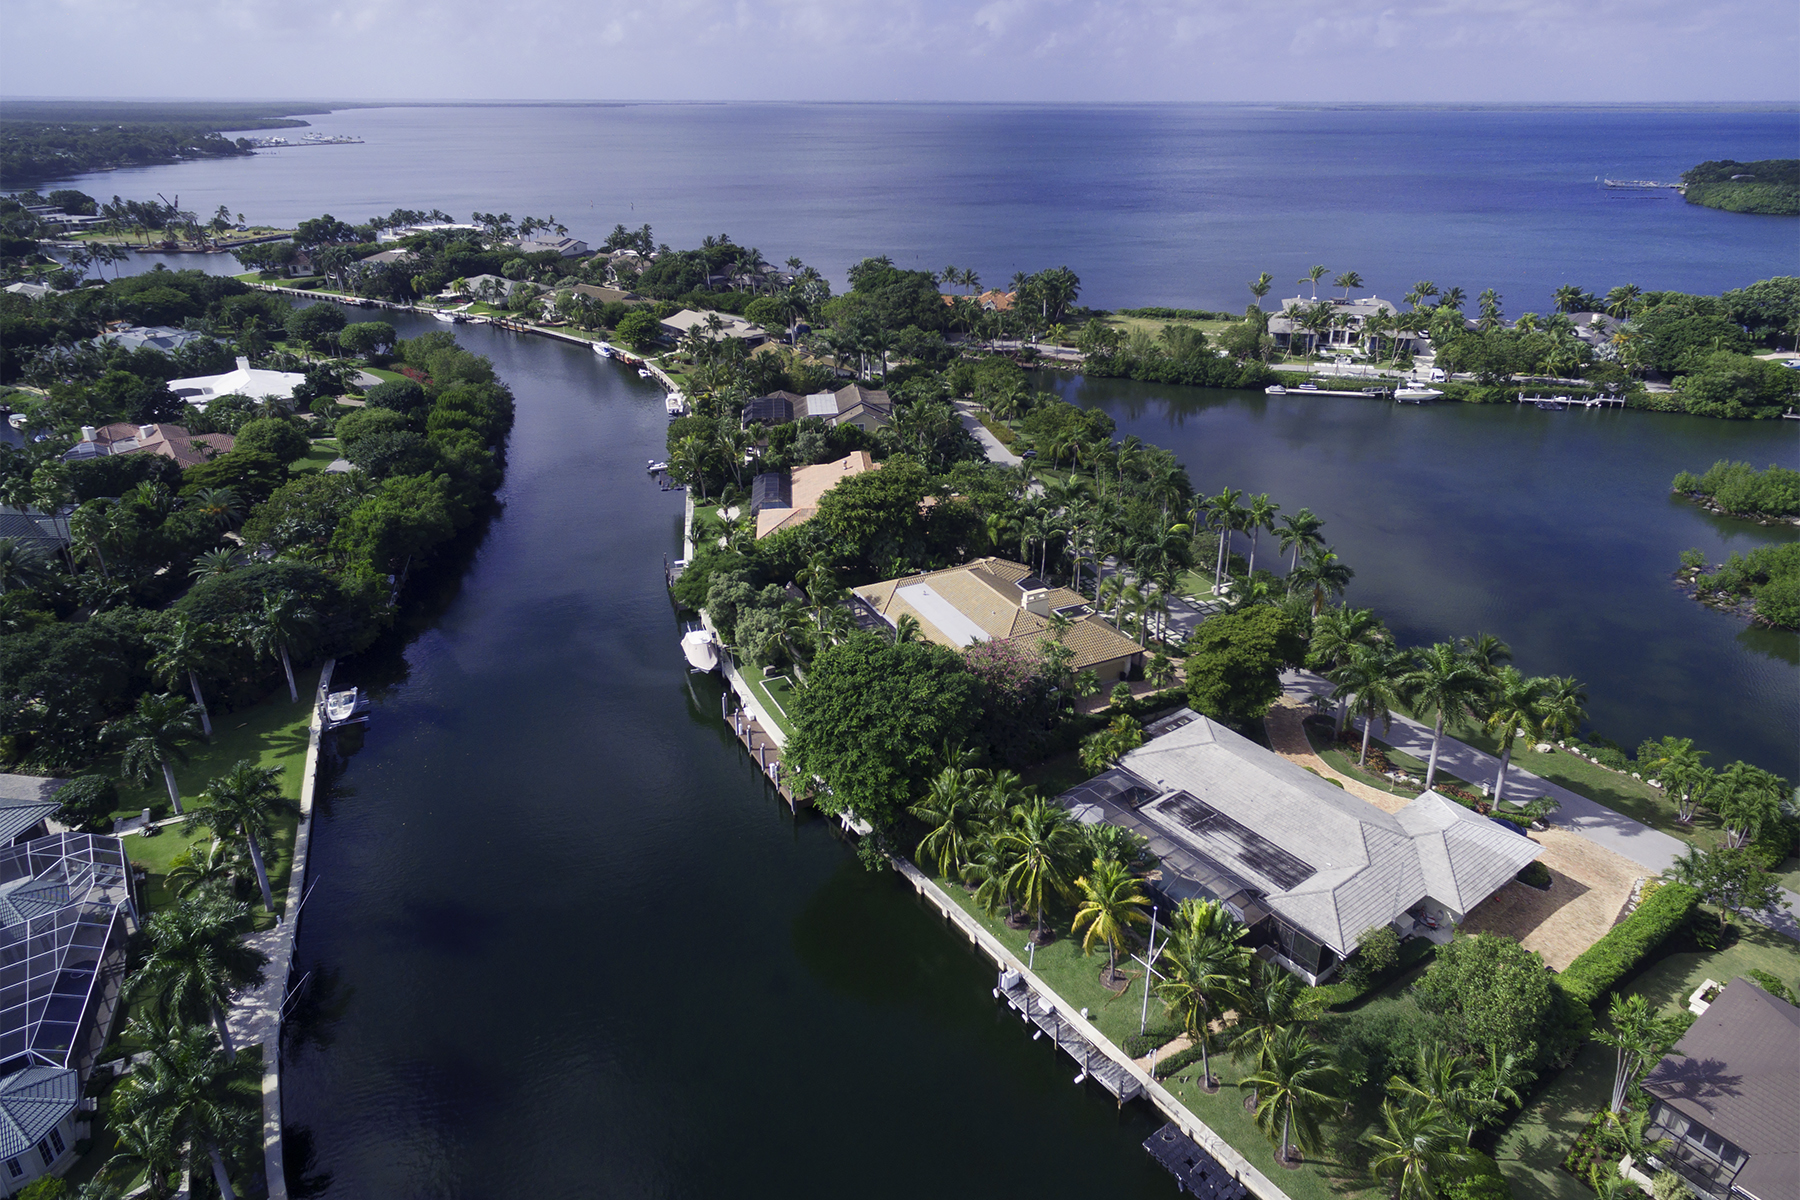 Tek Ailelik Ev için Satış at Fabulous Waterfront Location at Ocean Reef 32 East Snapper Point Drive Ocean Reef Community, Key Largo, Florida, 33037 Amerika Birleşik Devletleri